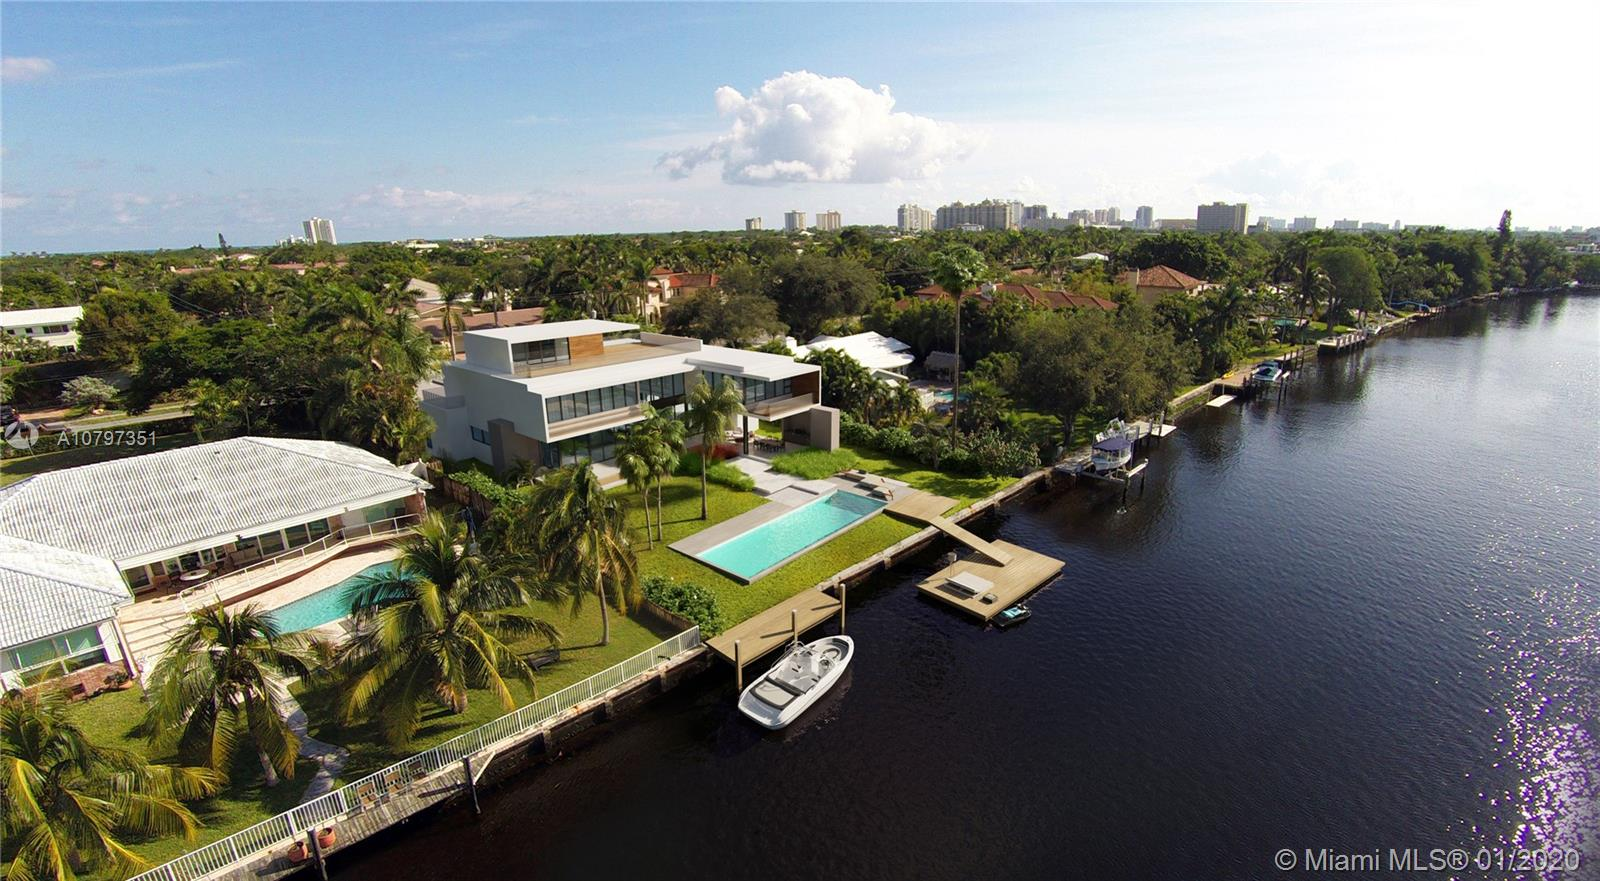 Unique, stunning, modern estate, 100 ft water frontage with panoramic views and dock, over sized infinity pool. Immediately dramatic open living and dinning room adjoins incredible Chef's kitchen and family room. Waterfront views command entire residence. Amazing rooftop terraces capture unbelievable views. Gym, Home theater, den and summer kitchen.